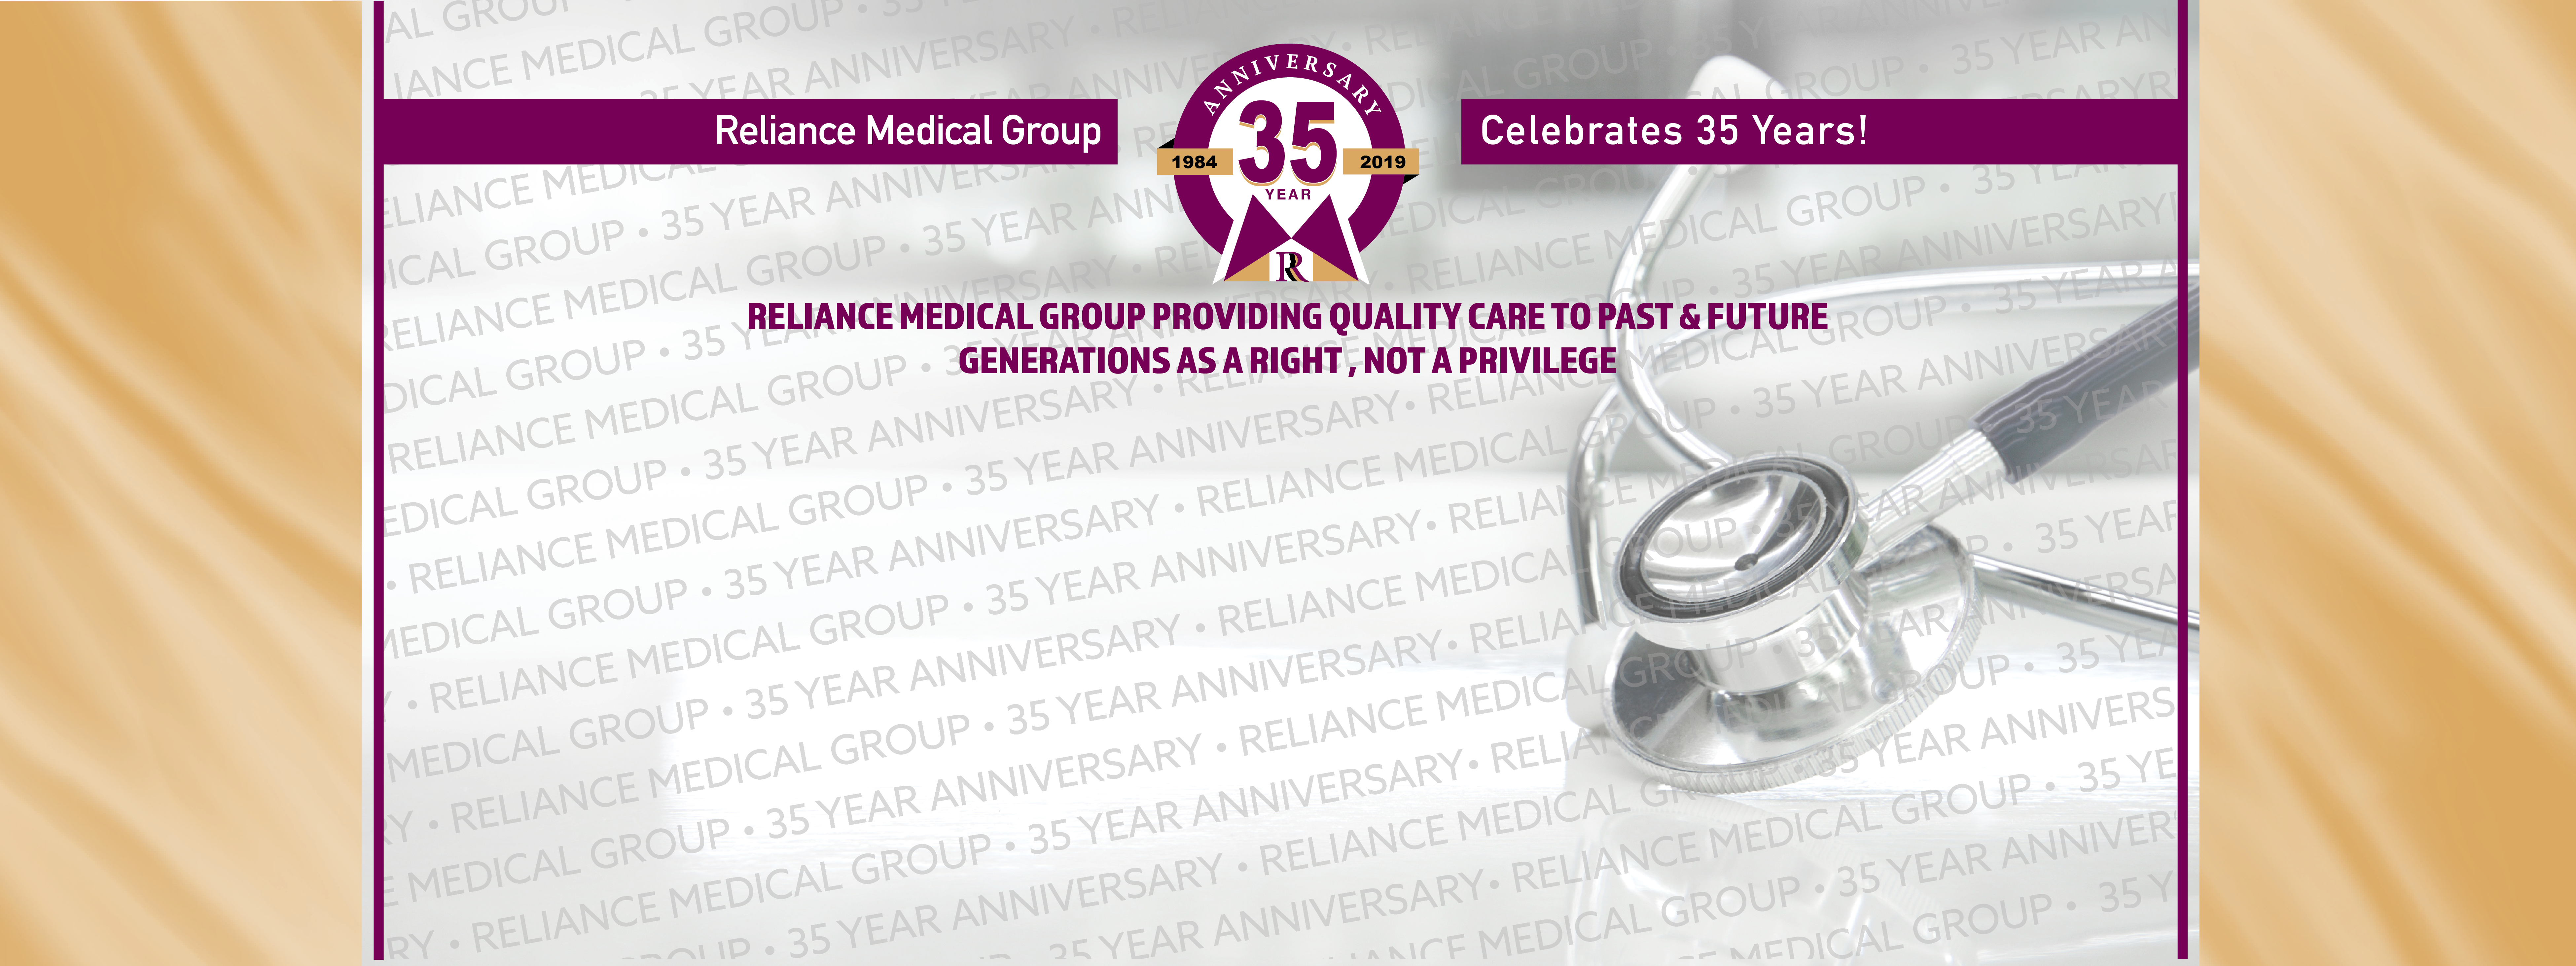 Reliance Medical Group - Your Family Is Our Family - New Jersey